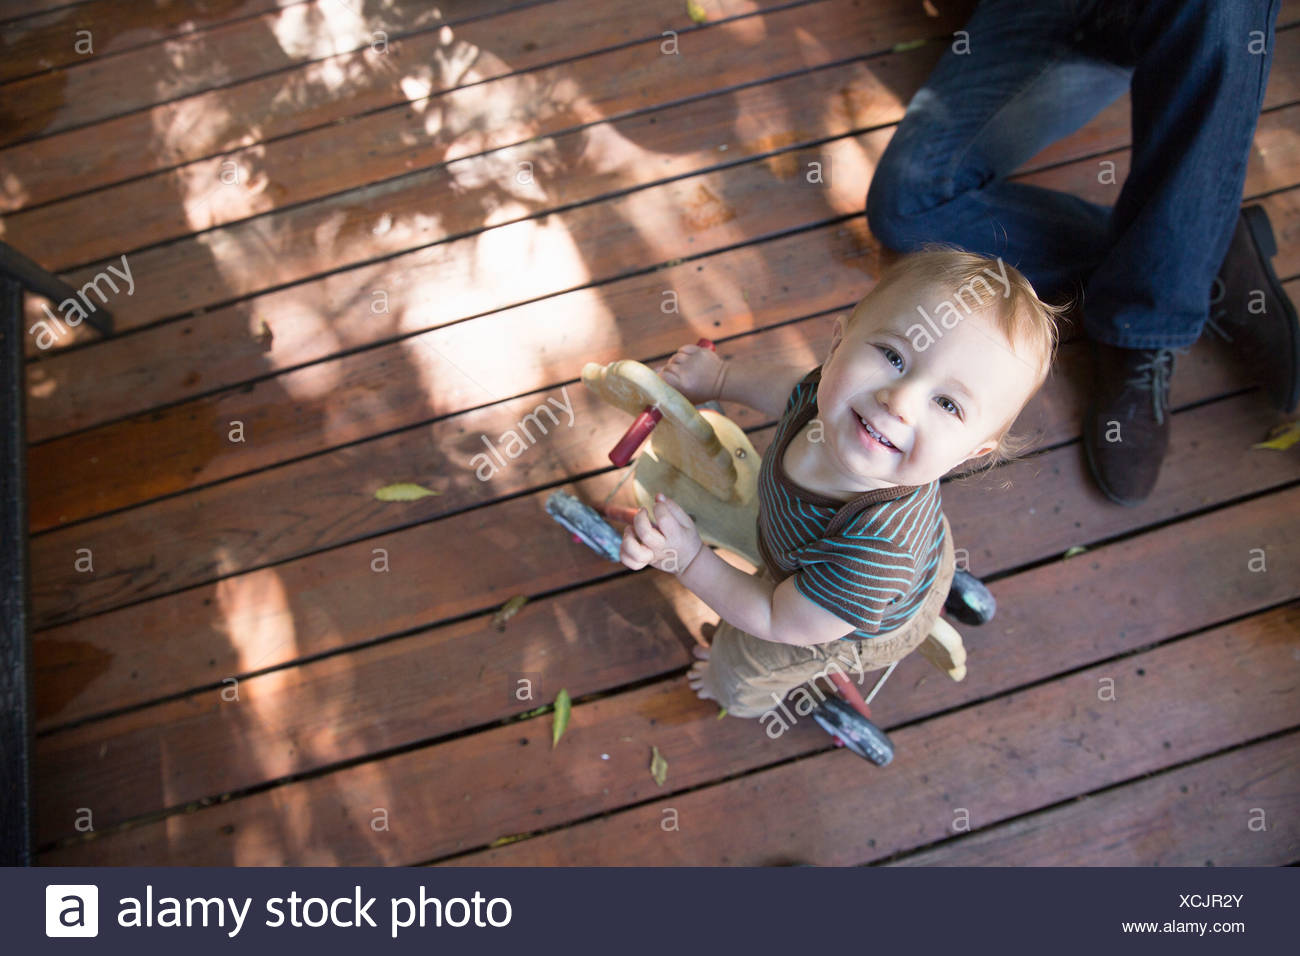 Baby riding on toy horse - Stock Image